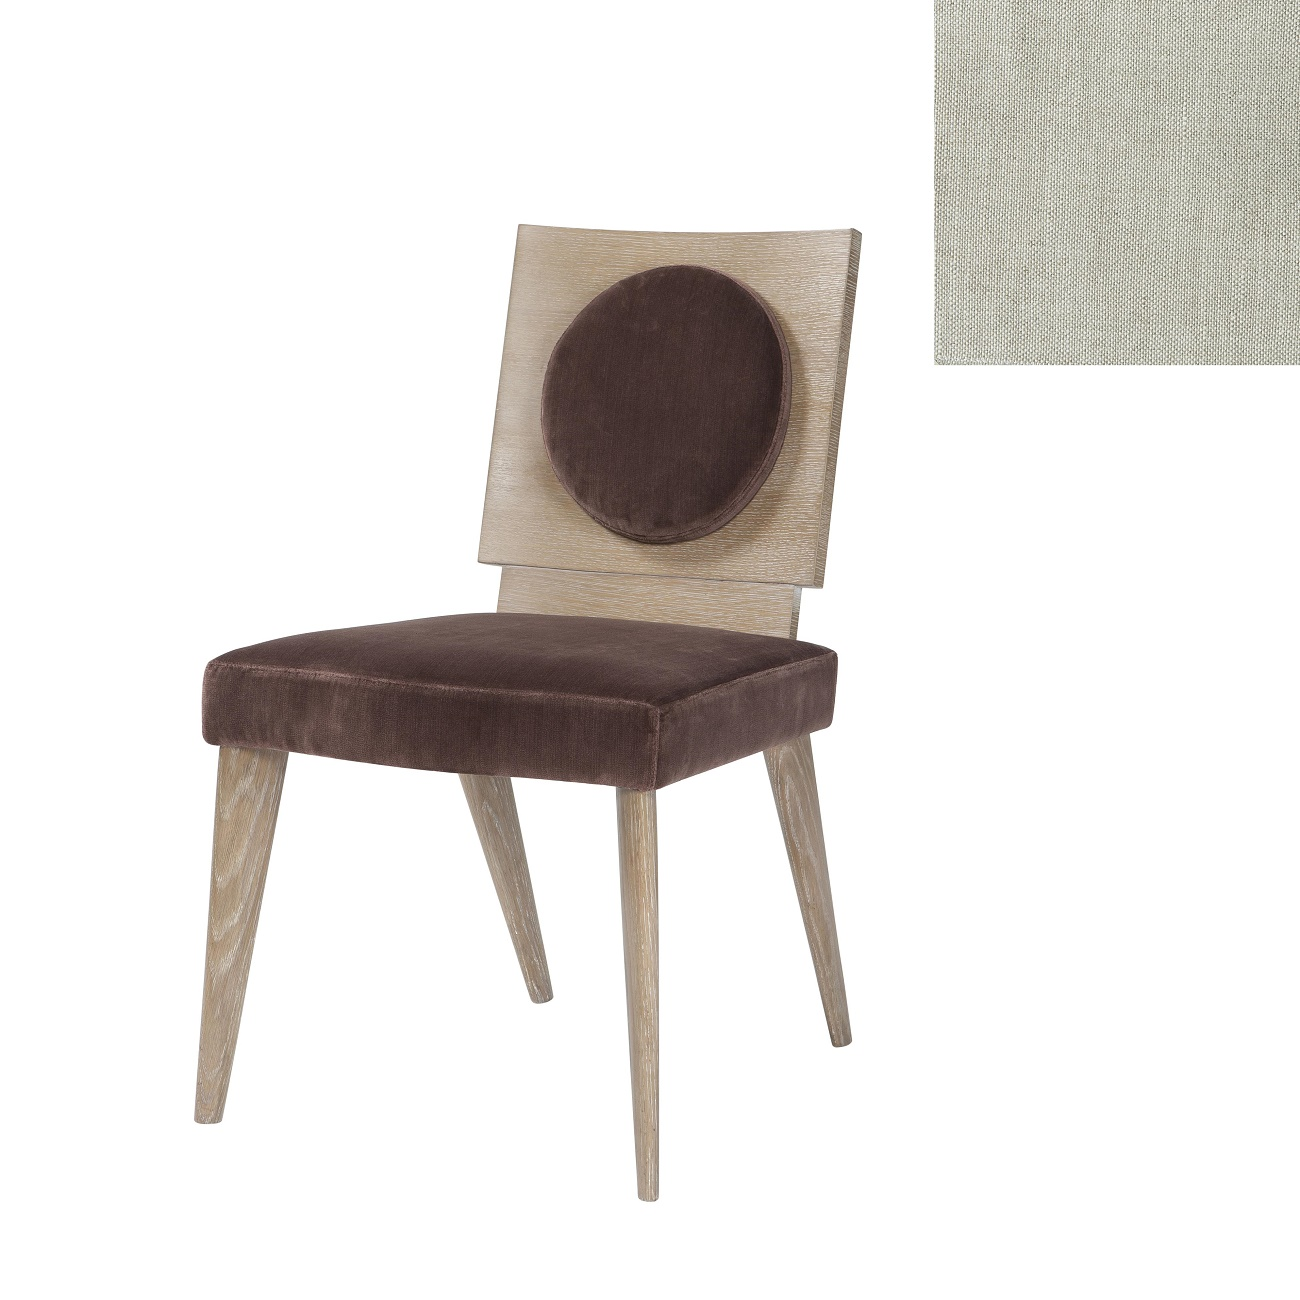 MB1005 1AQG Lucille Chair Theodore Alexander